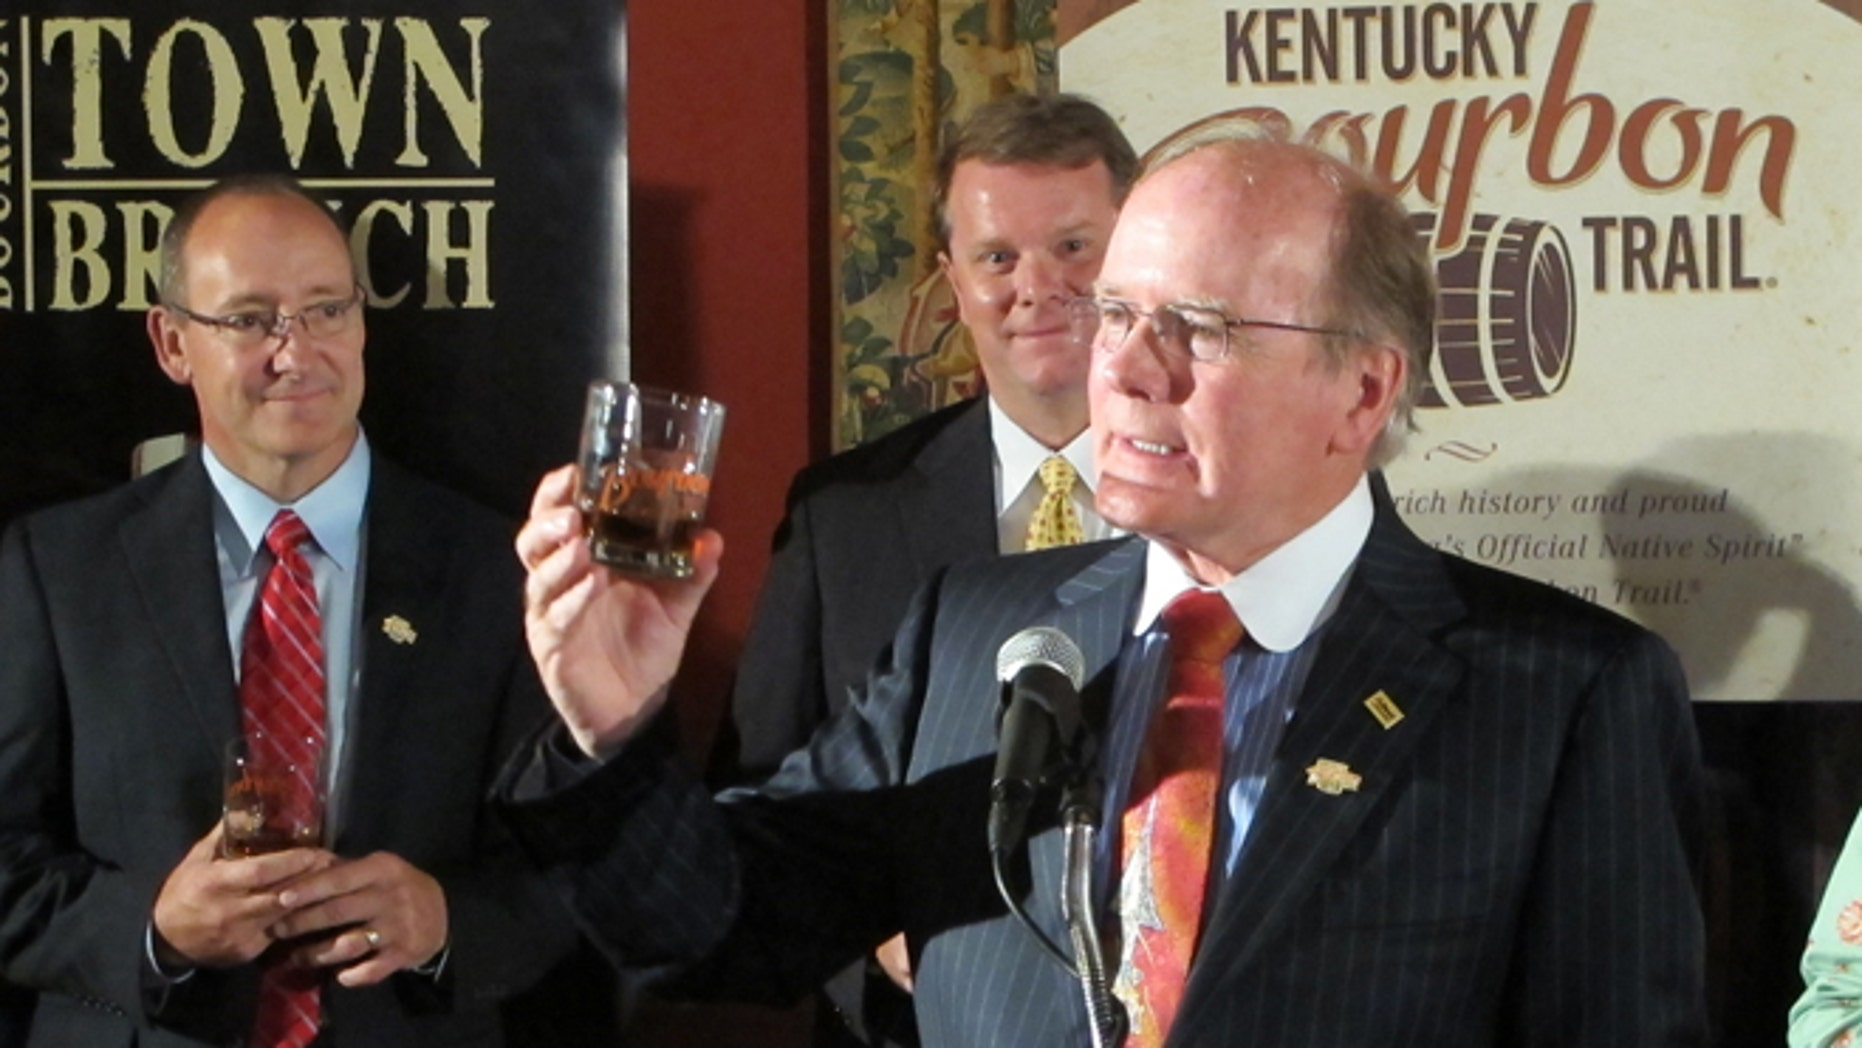 Aug. 16, 2012: Alltech President Pearse Lyons raises his glass as Alltechs Lexington Brewing & Distilling Co. joins the Kentucky Bourbon Trail.